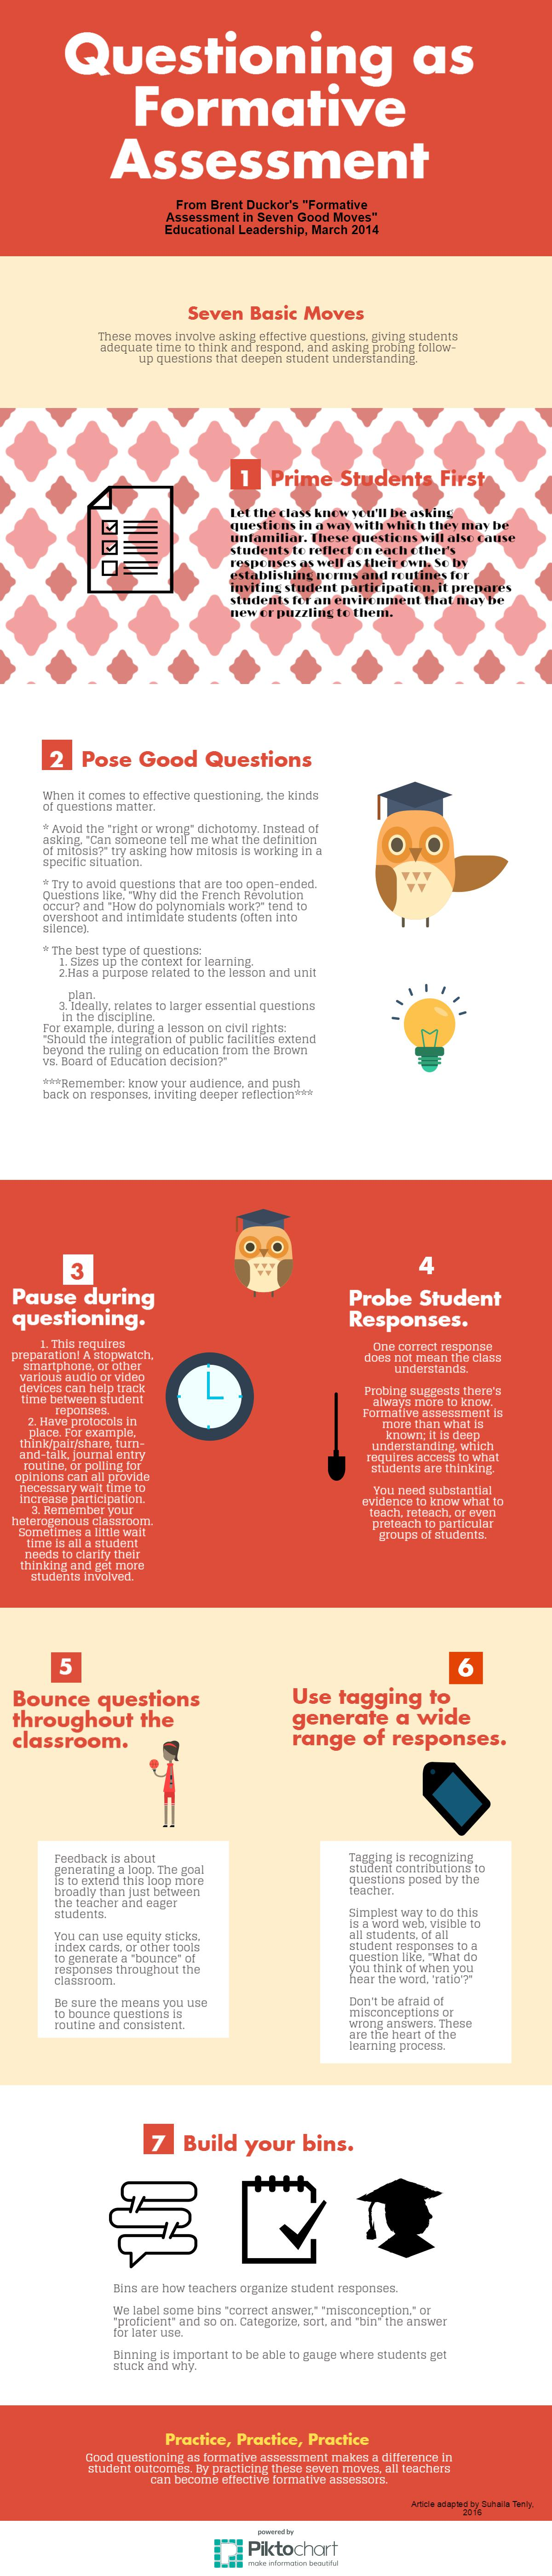 Seven Basic Moves in Questioning